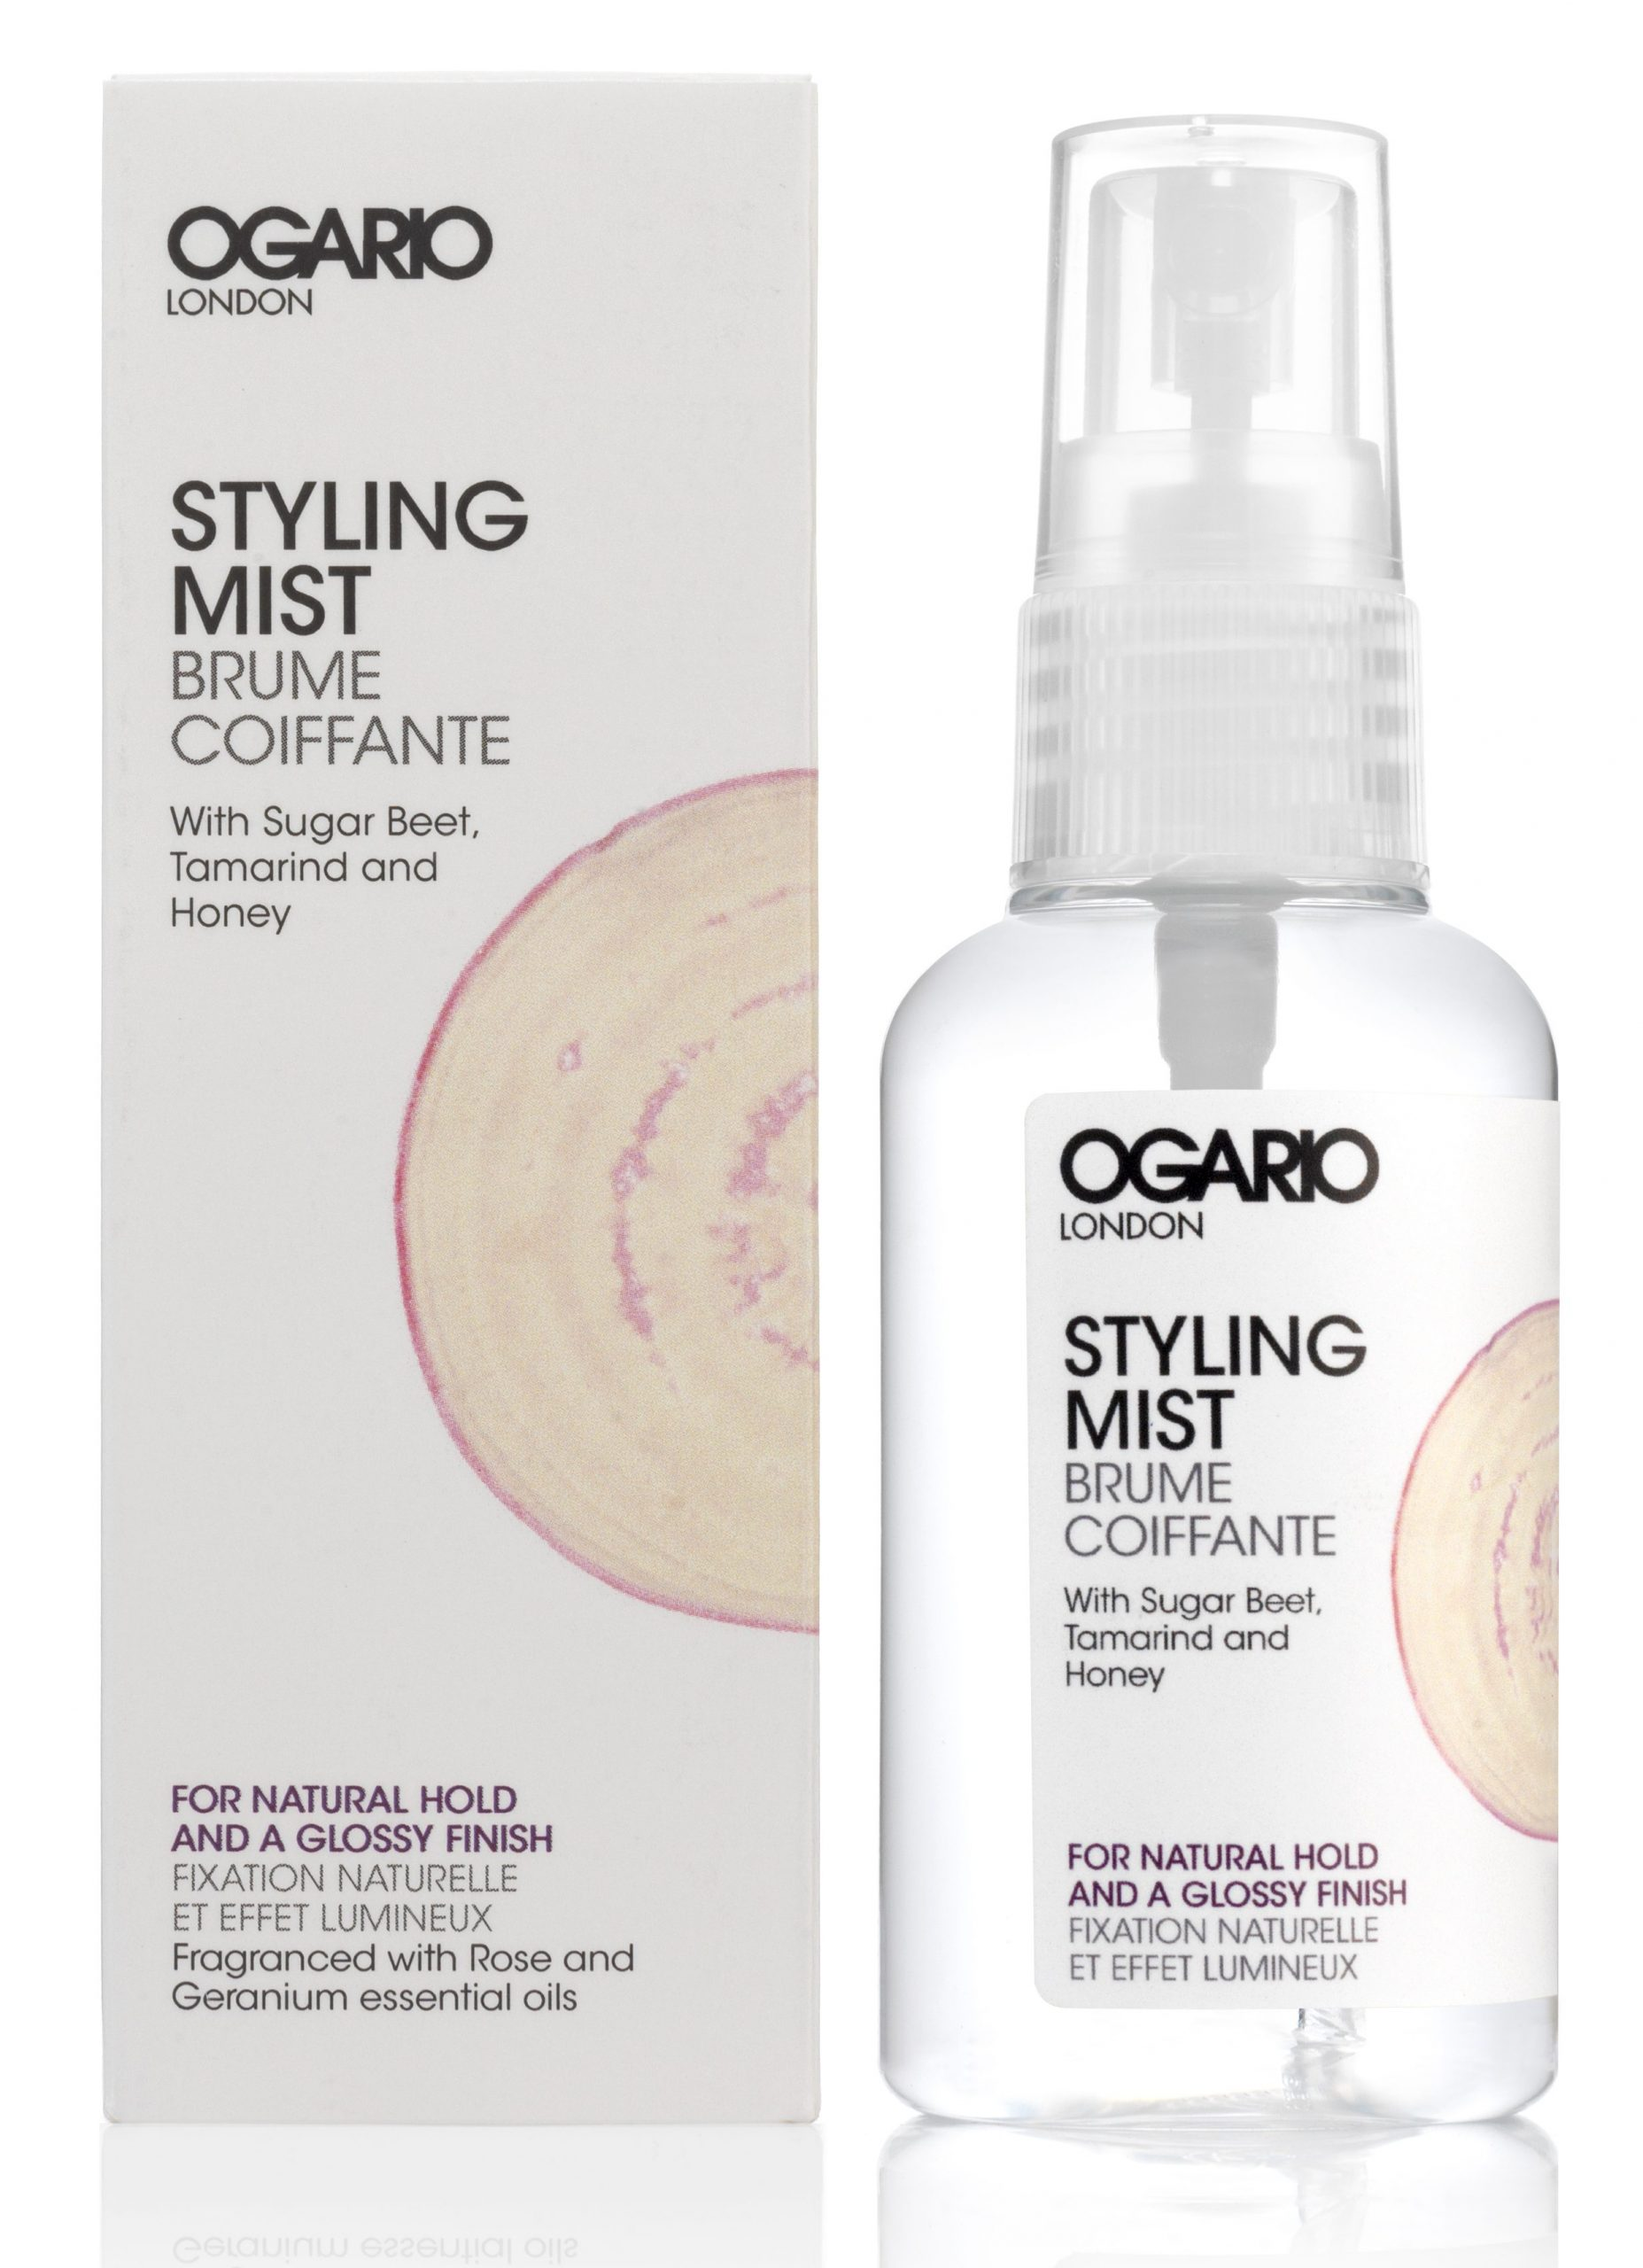 Leave in conditioner; Styling Mist Glossy, best for dry, damaged or bleached hair.